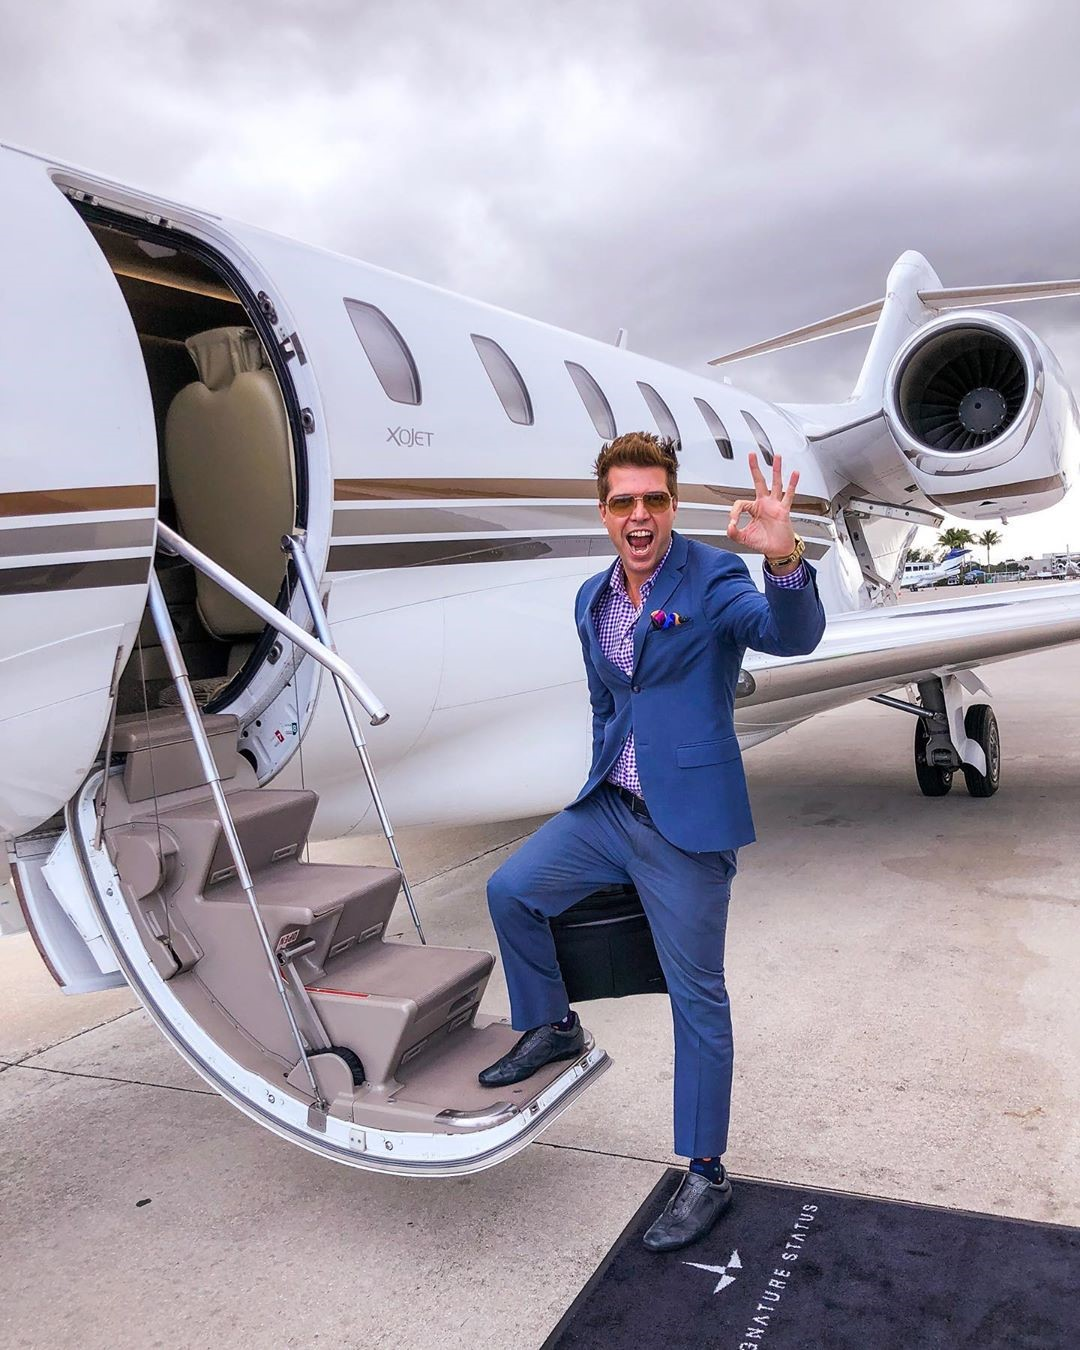 FROM A SERIOUS IMMIGRATION LAWYER TO A SUCCESSFUL INFLUENCER – GIANNI MENDES TONIUTTI KNOWS HOW TO LIVE LIFE